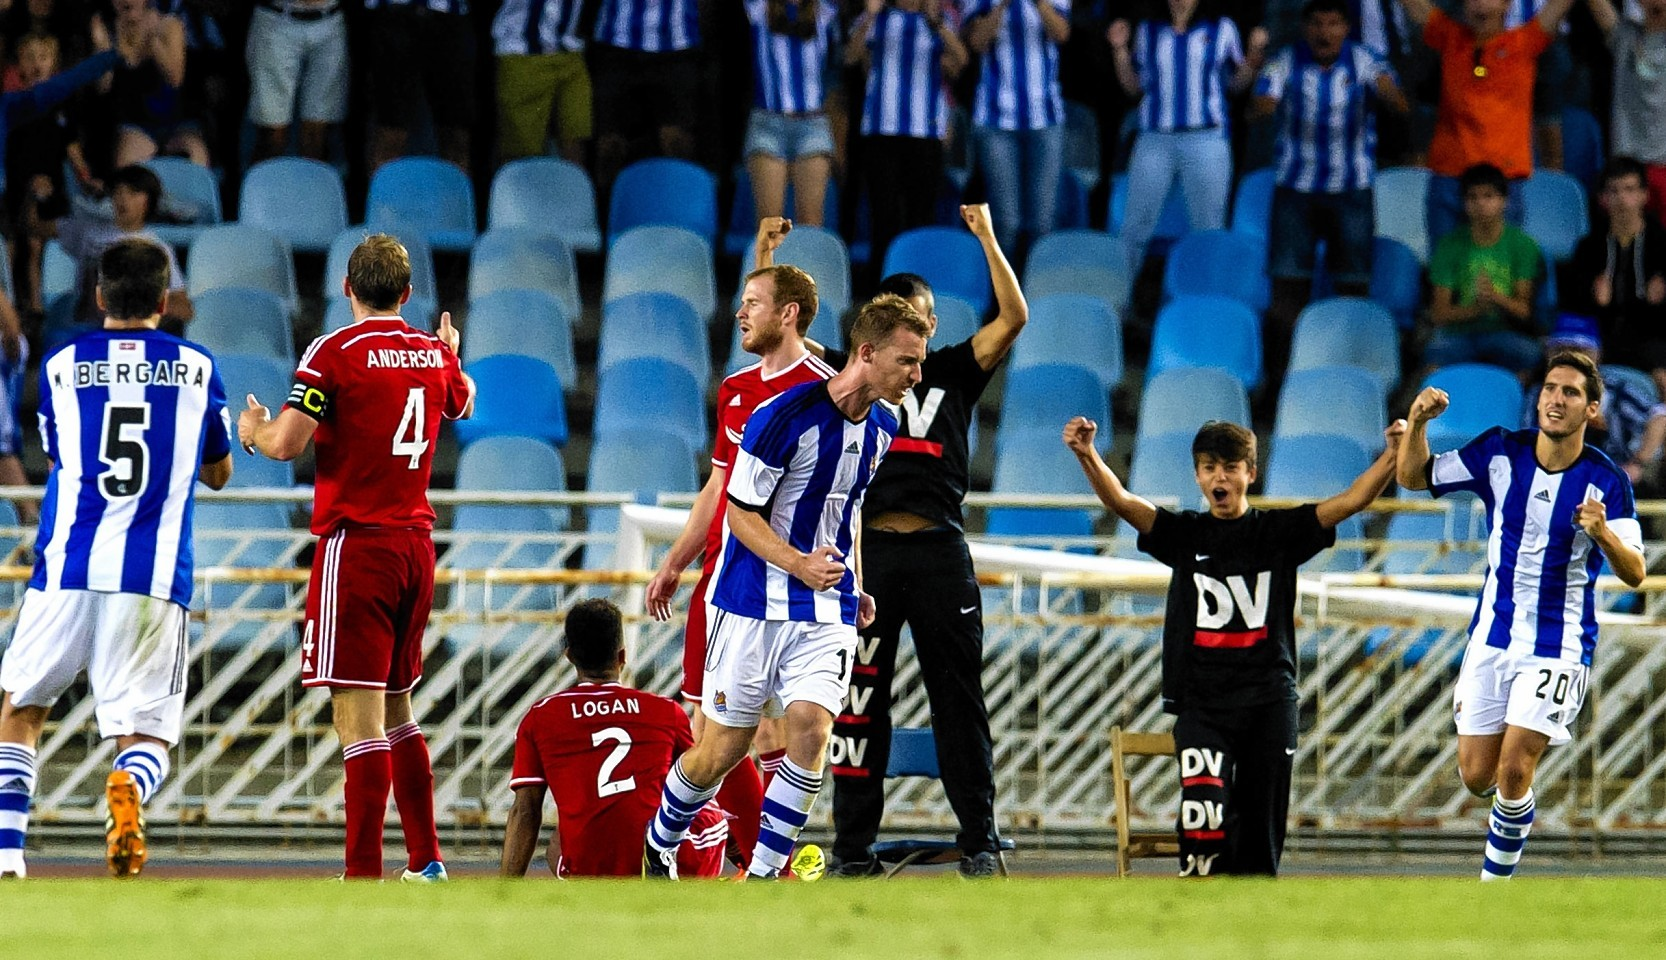 Real Sociedad score against the Dons